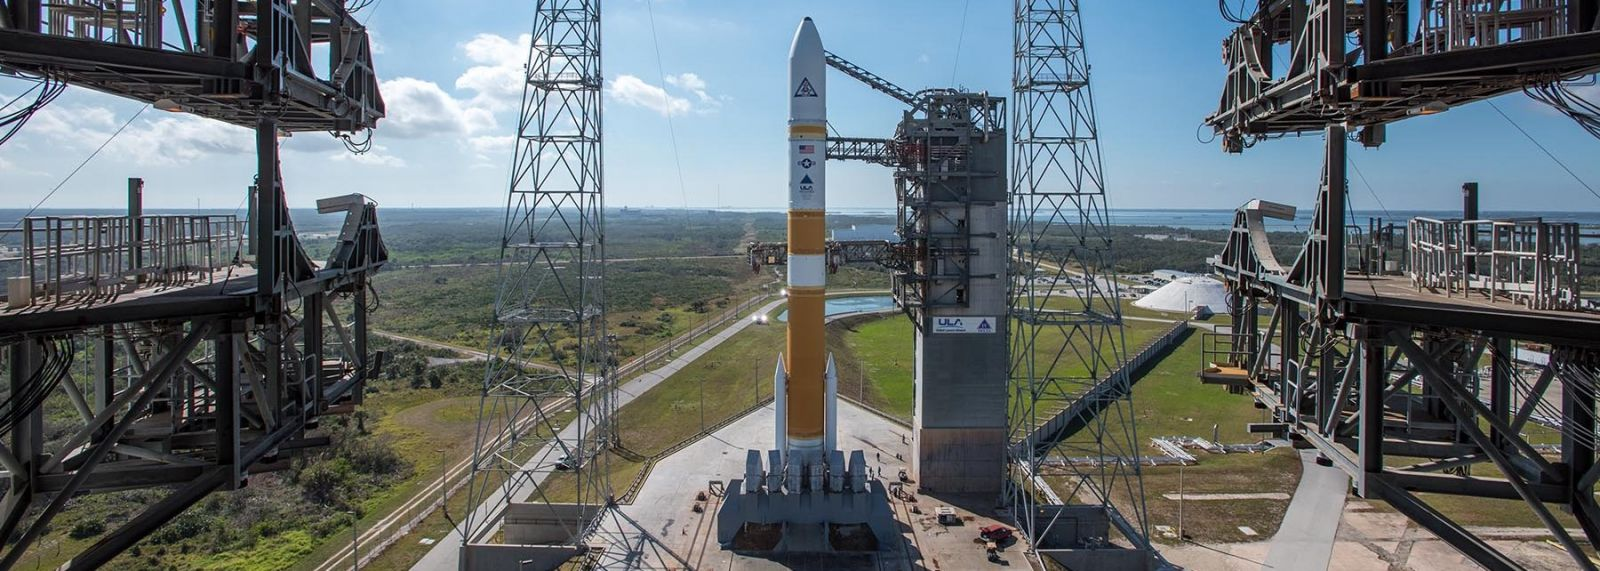 A United Launch Alliance Delta IV Medium+ 5,4 rocket sits poised to send the WGS-8 satellite to orbit. Photo Credit: ULA